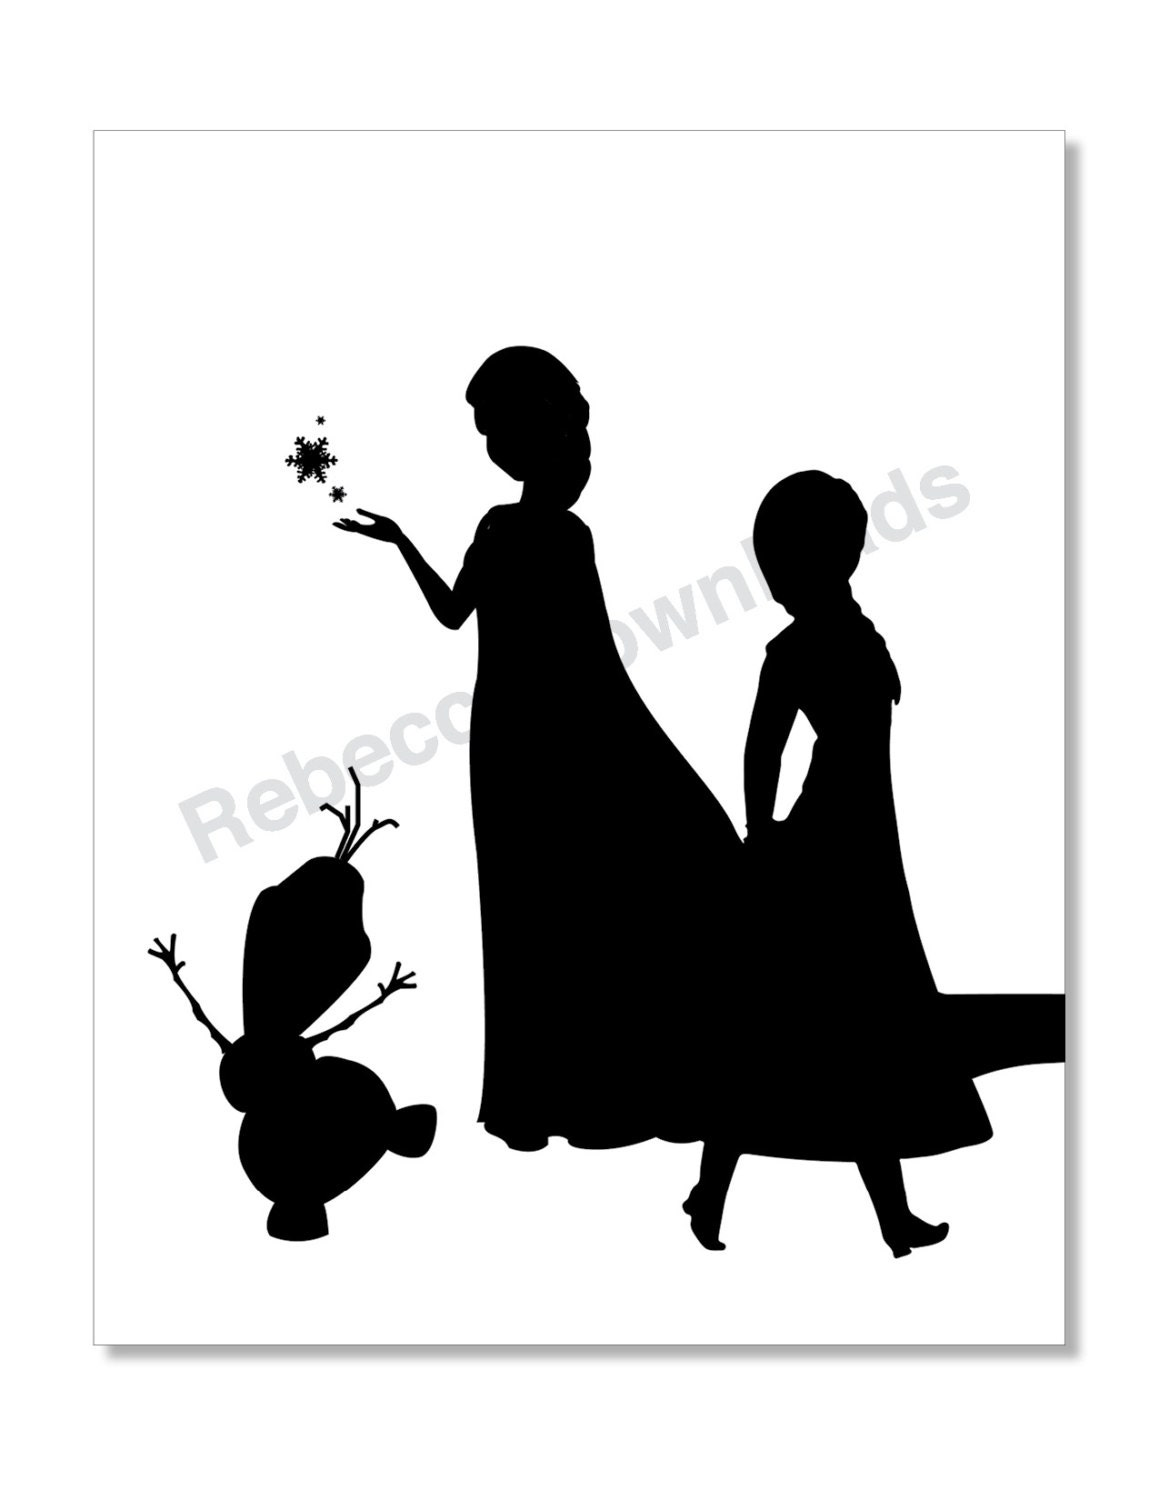 Frozen Characters Silhouette Black and White Print Decor